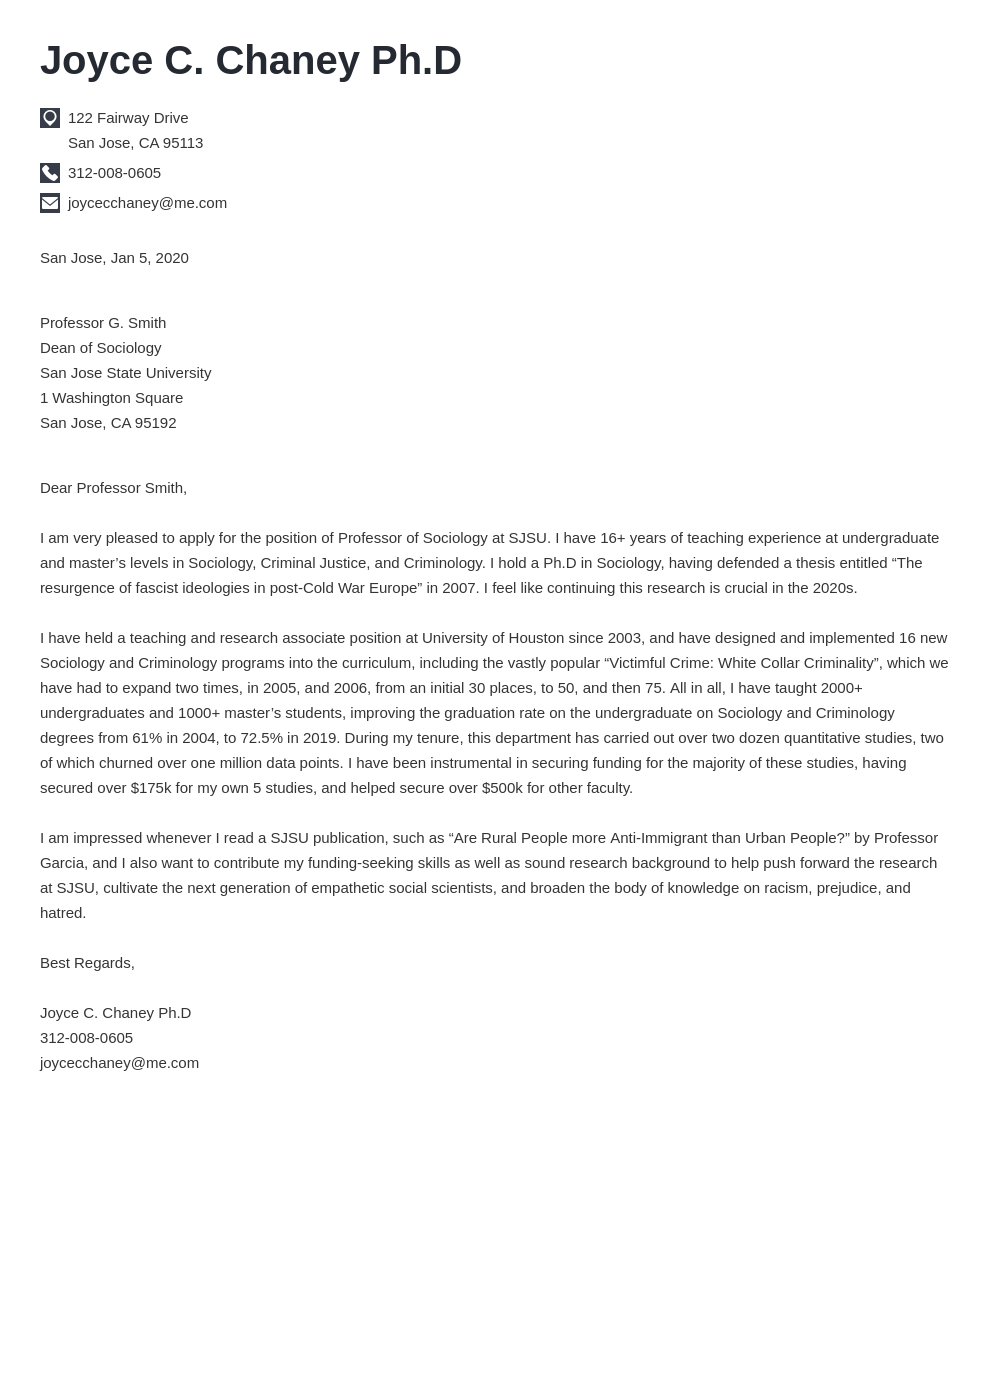 cover letter examples academic template iconic uk